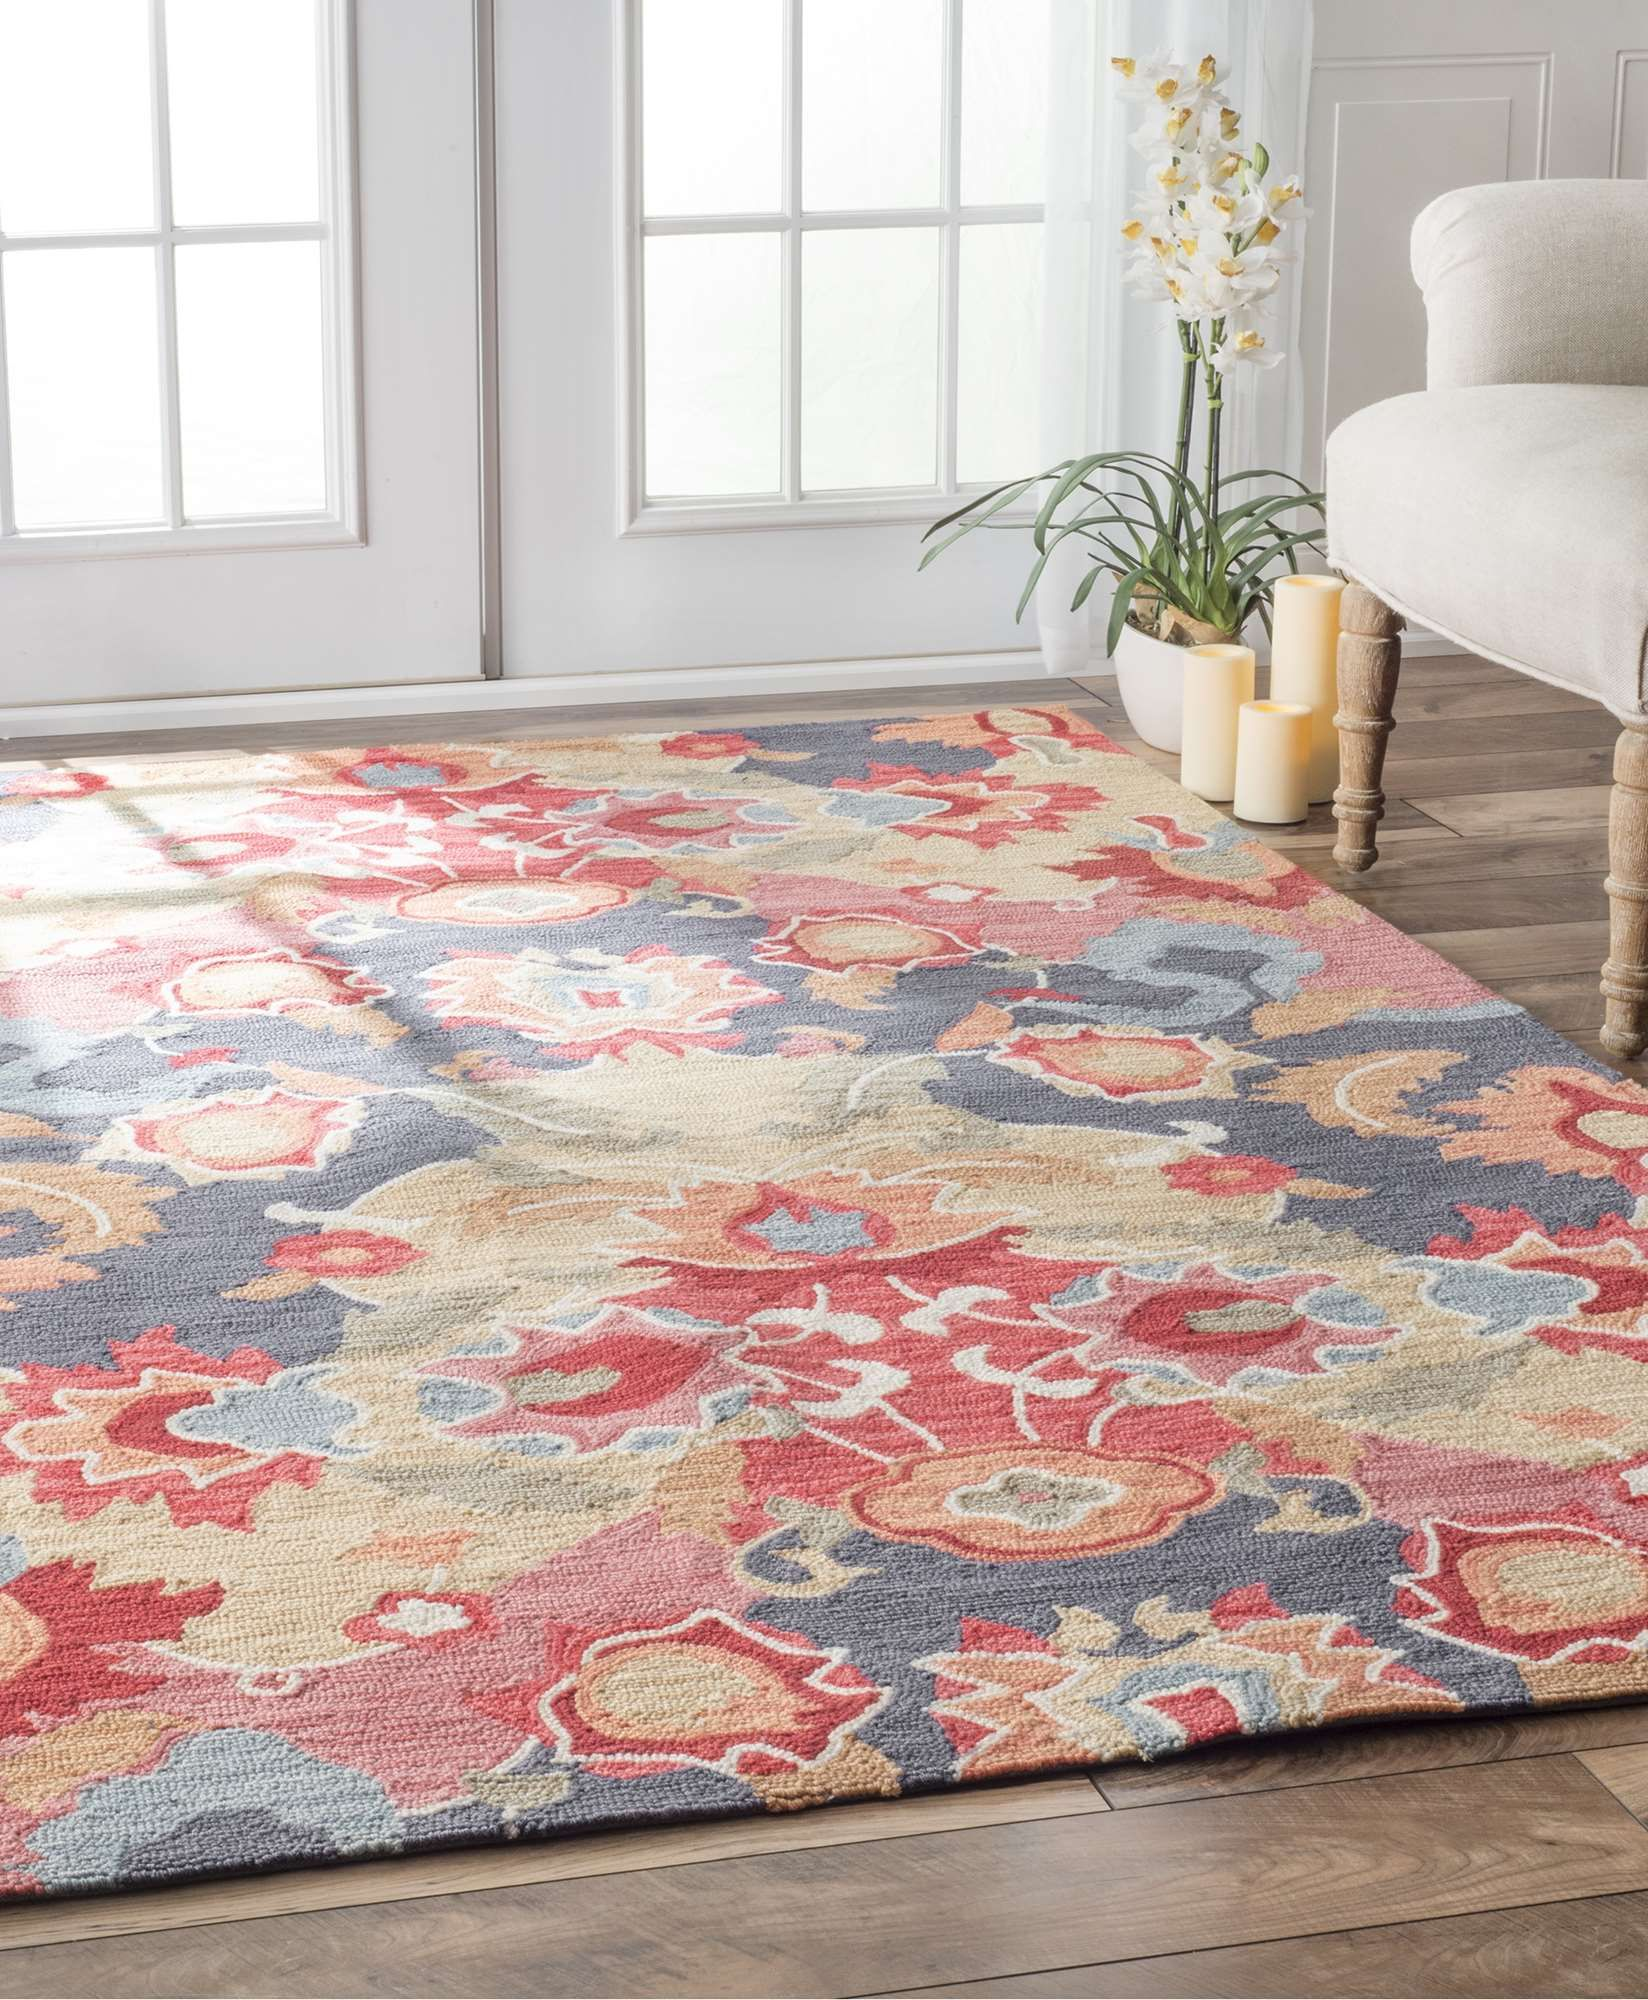 Both Contemporary And Organic This Area Rug Is B With A Burst Of Blossom Enchantment The Hand Hooked Made Out 100 Polyester Adds